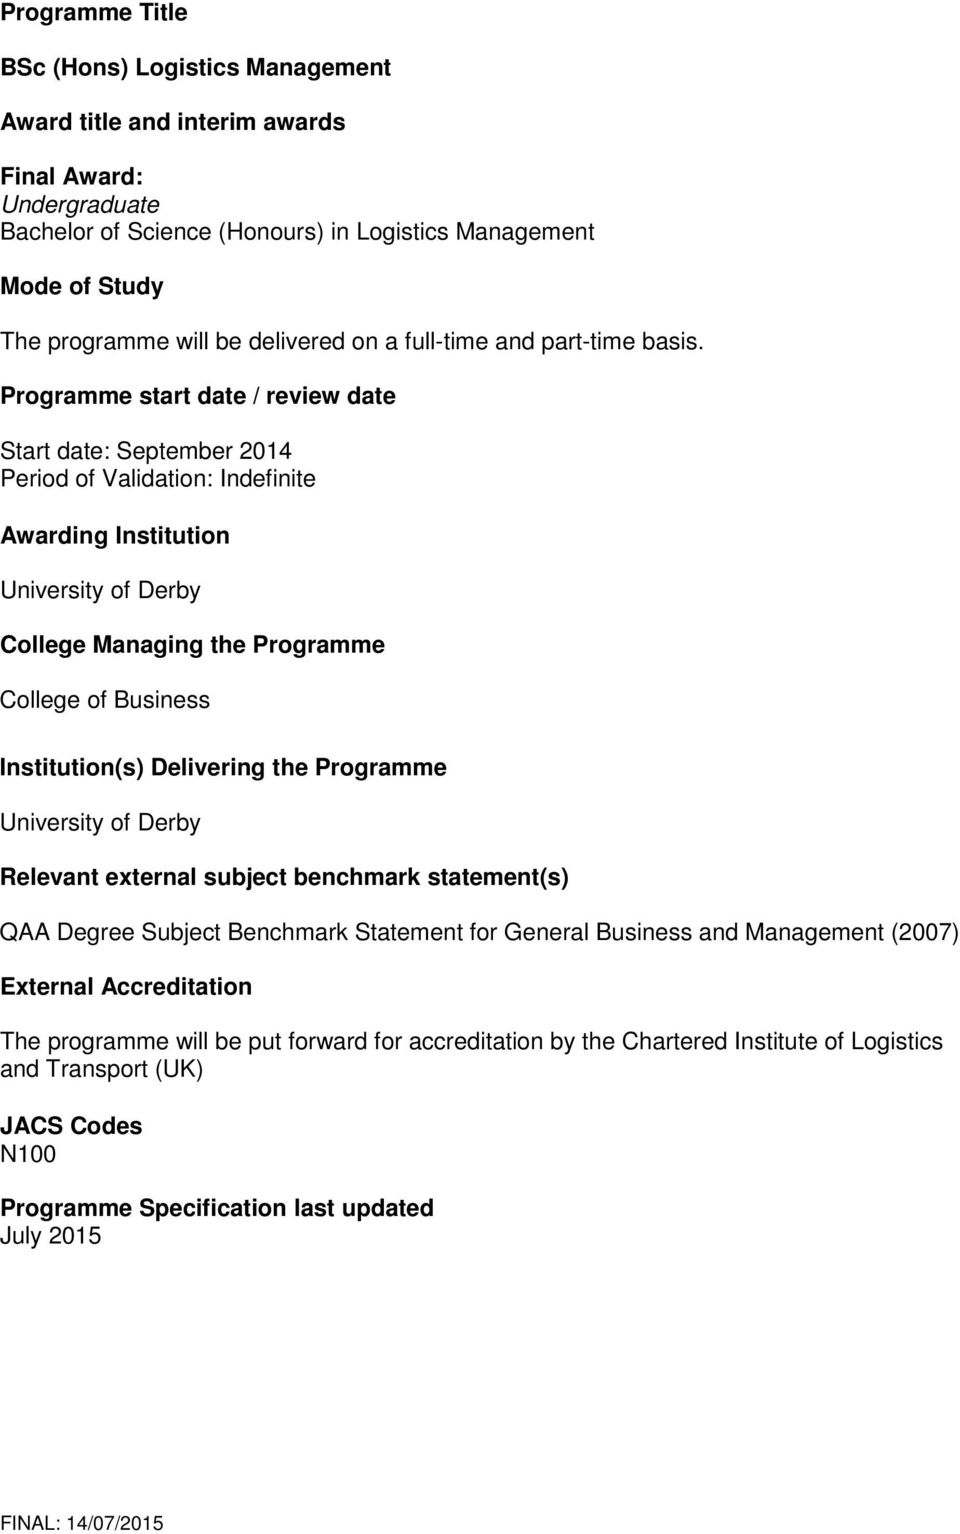 Programme start date / review date Start date: September 2014 Period of Validation: Indefinite Awarding Institution University of Derby College Managing the Programme College of Business